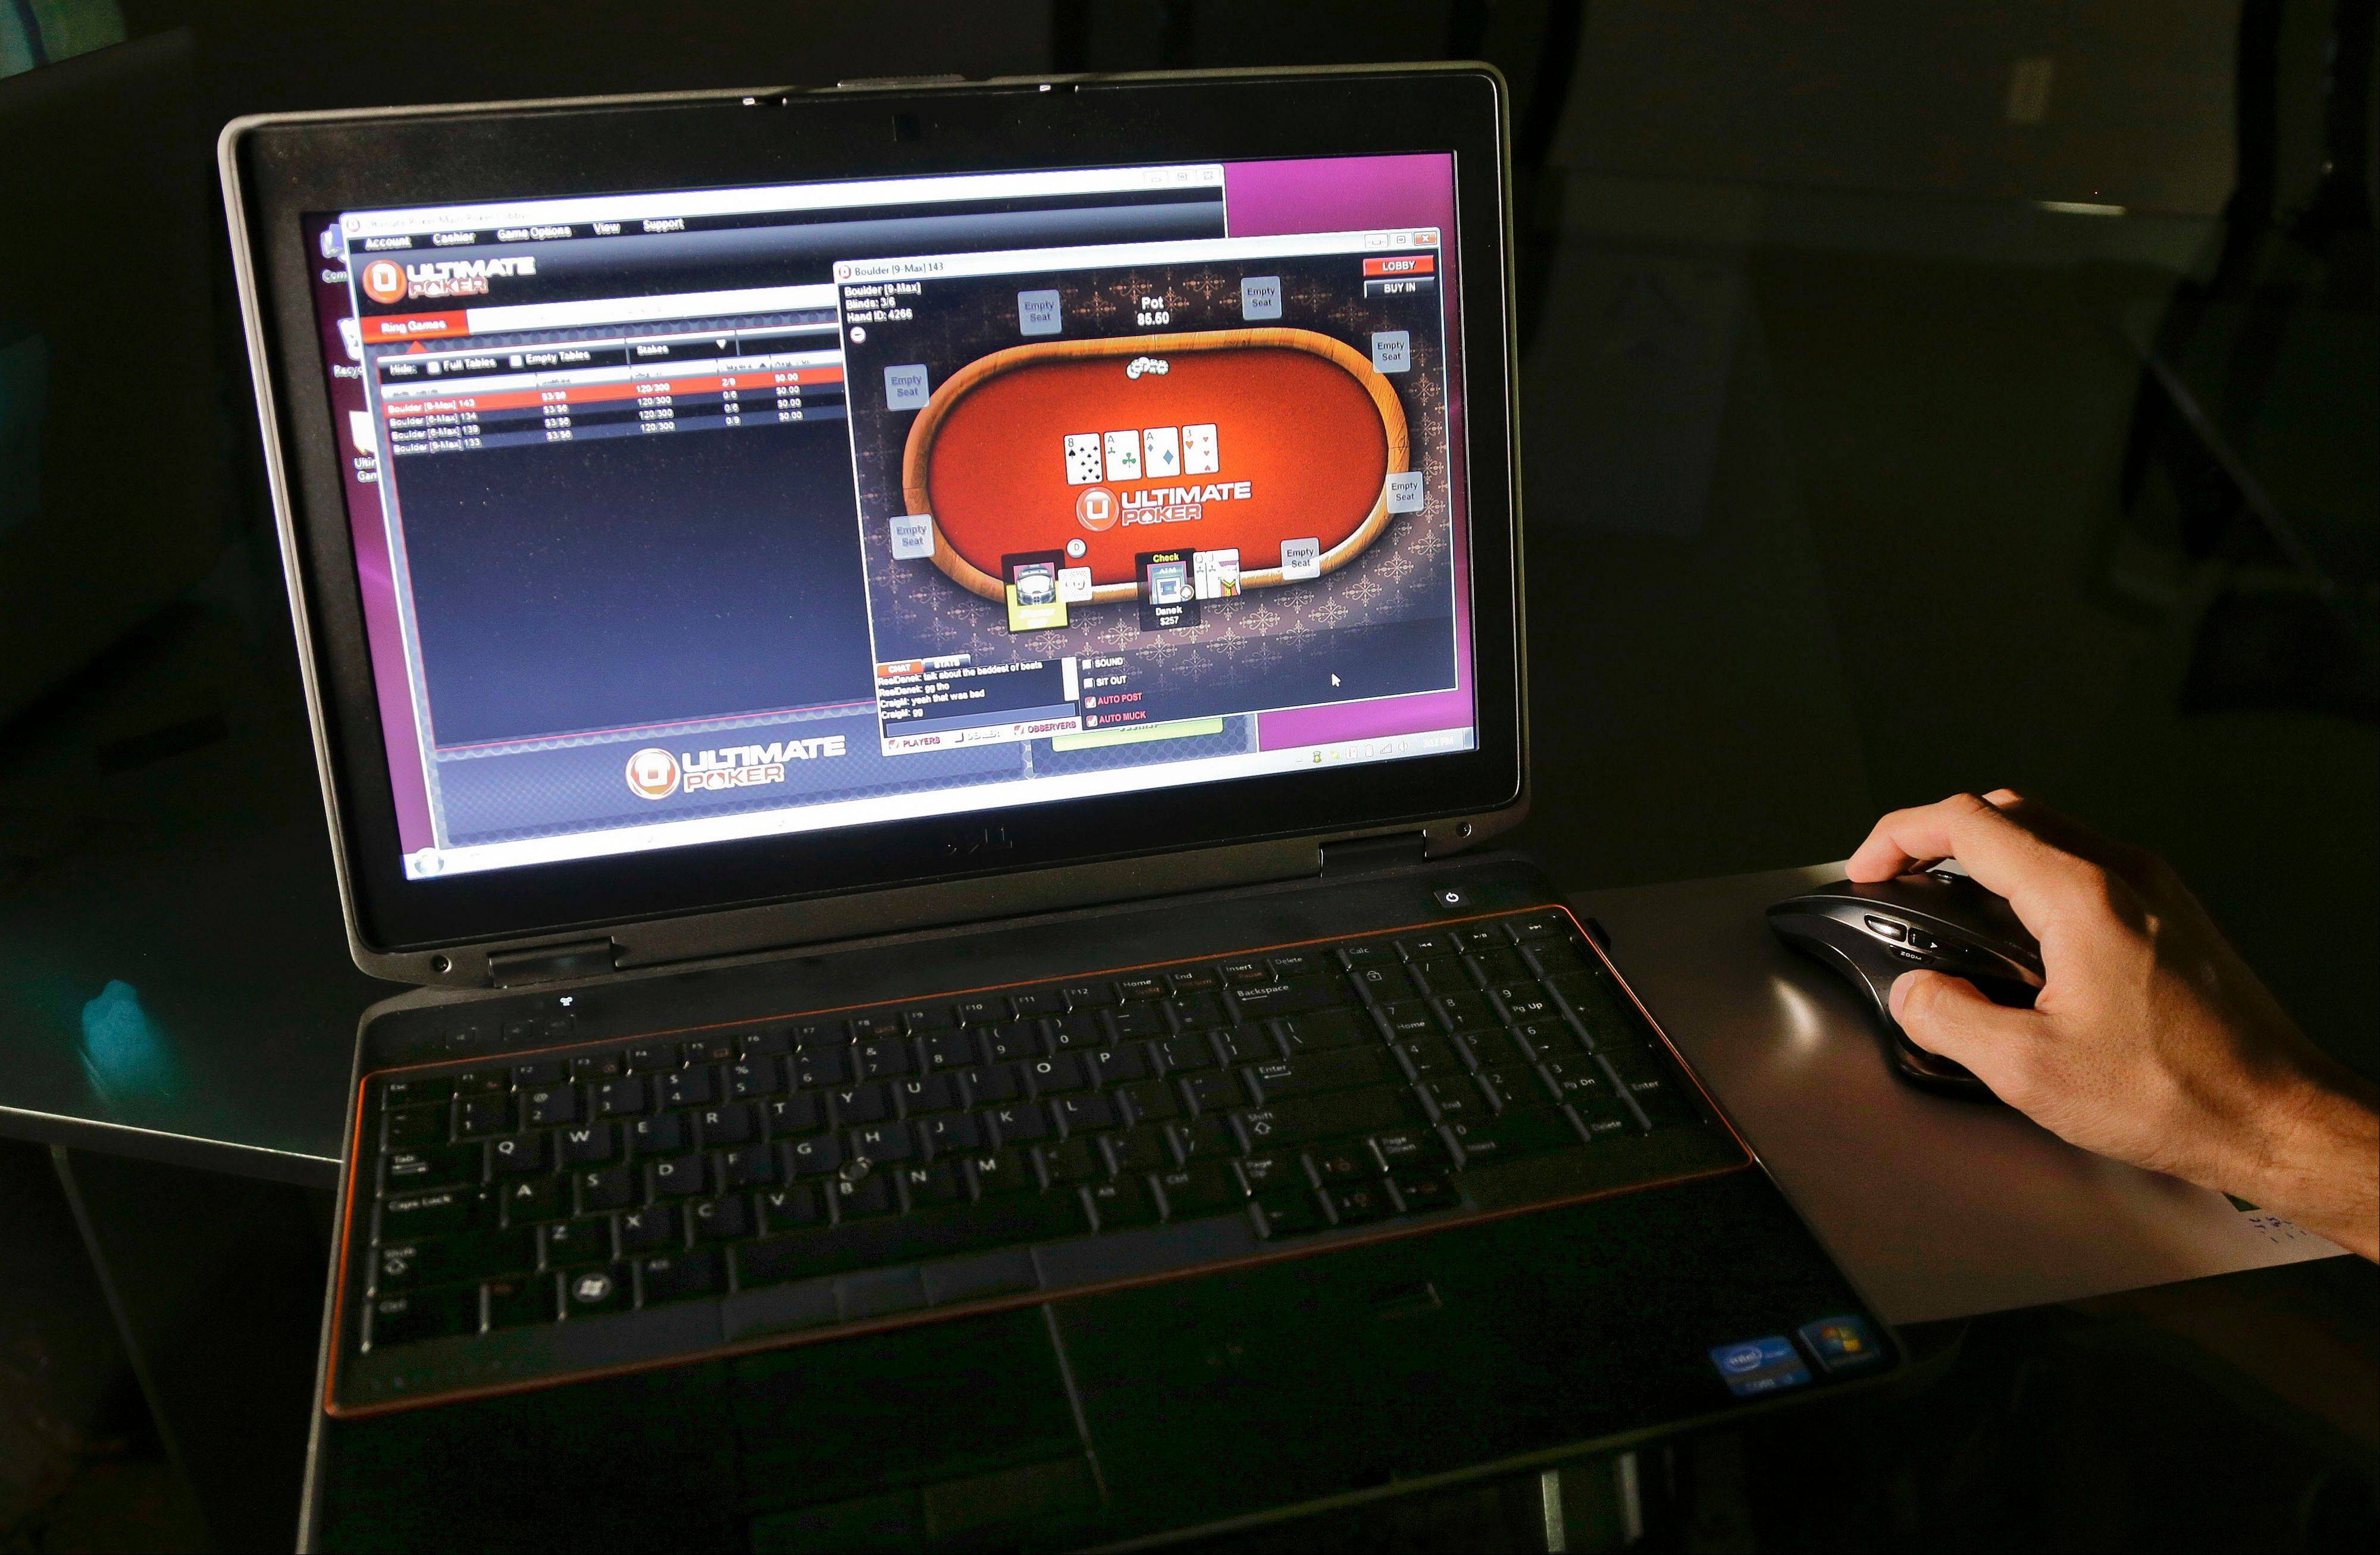 Ultimate Poker, the first legal, real-money poker site in the United States, will be available only to in players in Nevada but likely represents the shape of things to come for gamblers across the country.